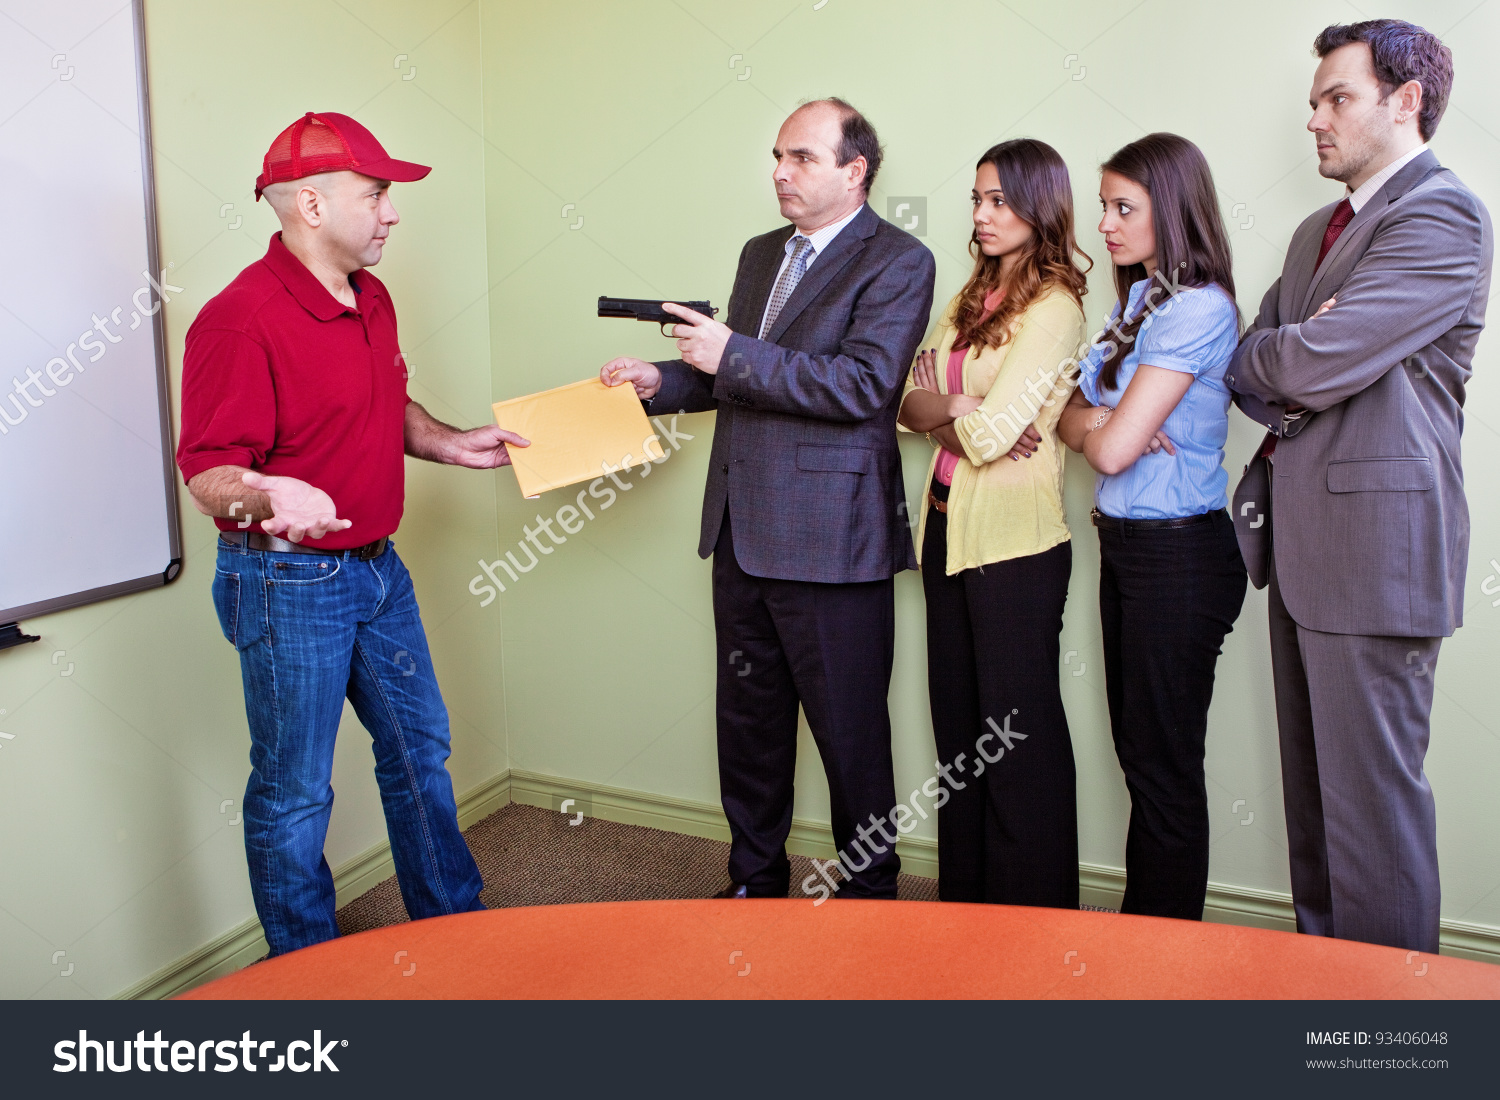 Don`T Shoot The Messenger Stock Photo 93406048 : Shutterstock.